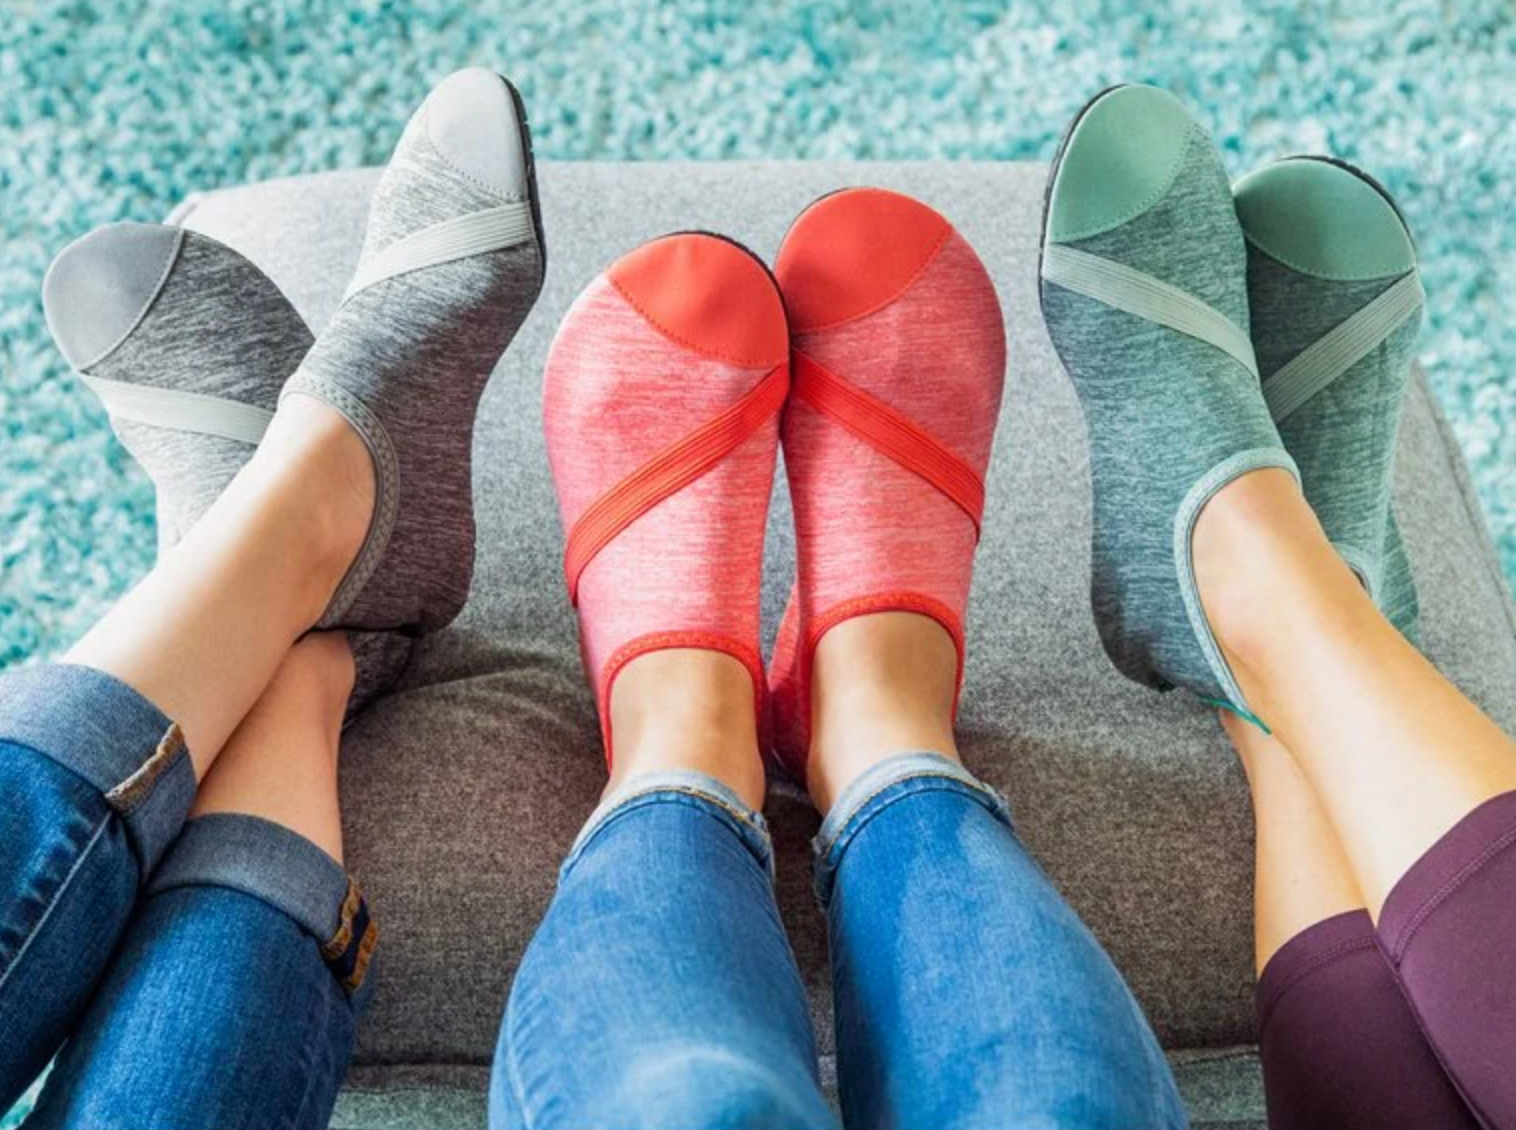 Models wearing sock-like shoes in heathered gray, coral, and mint green colors